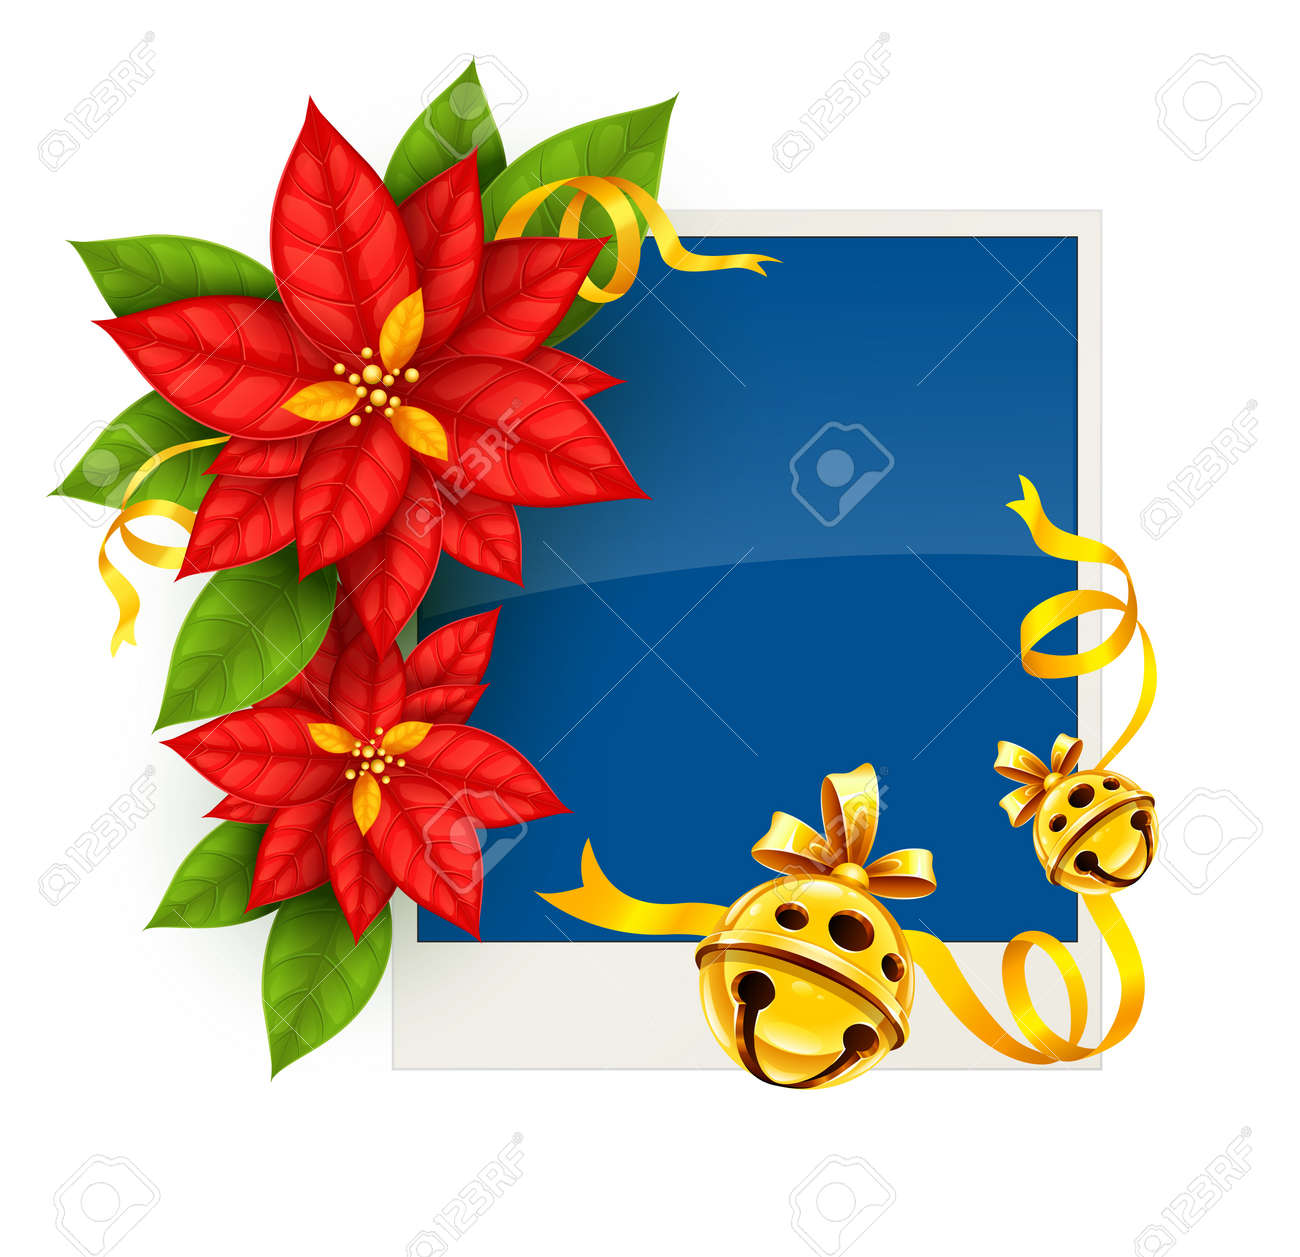 Christmas Greeting Card With Traditional Red Poinsettia Flowers